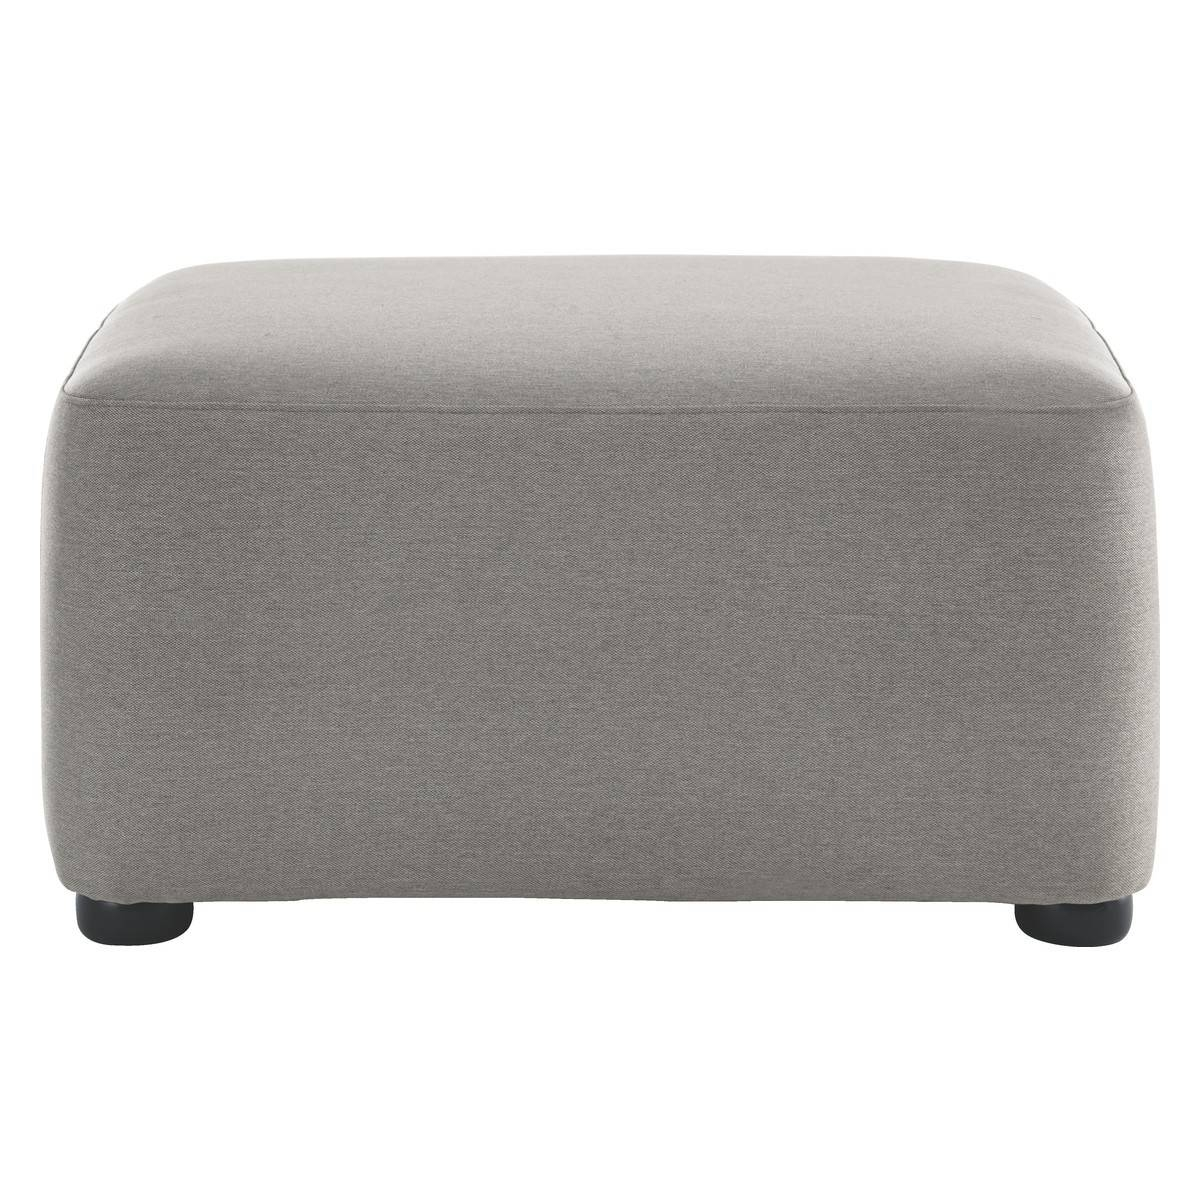 Kasha Grey Fabric Footstool | Buy Now At Habitat Uk for Fabric Footstools (Image 20 of 30)